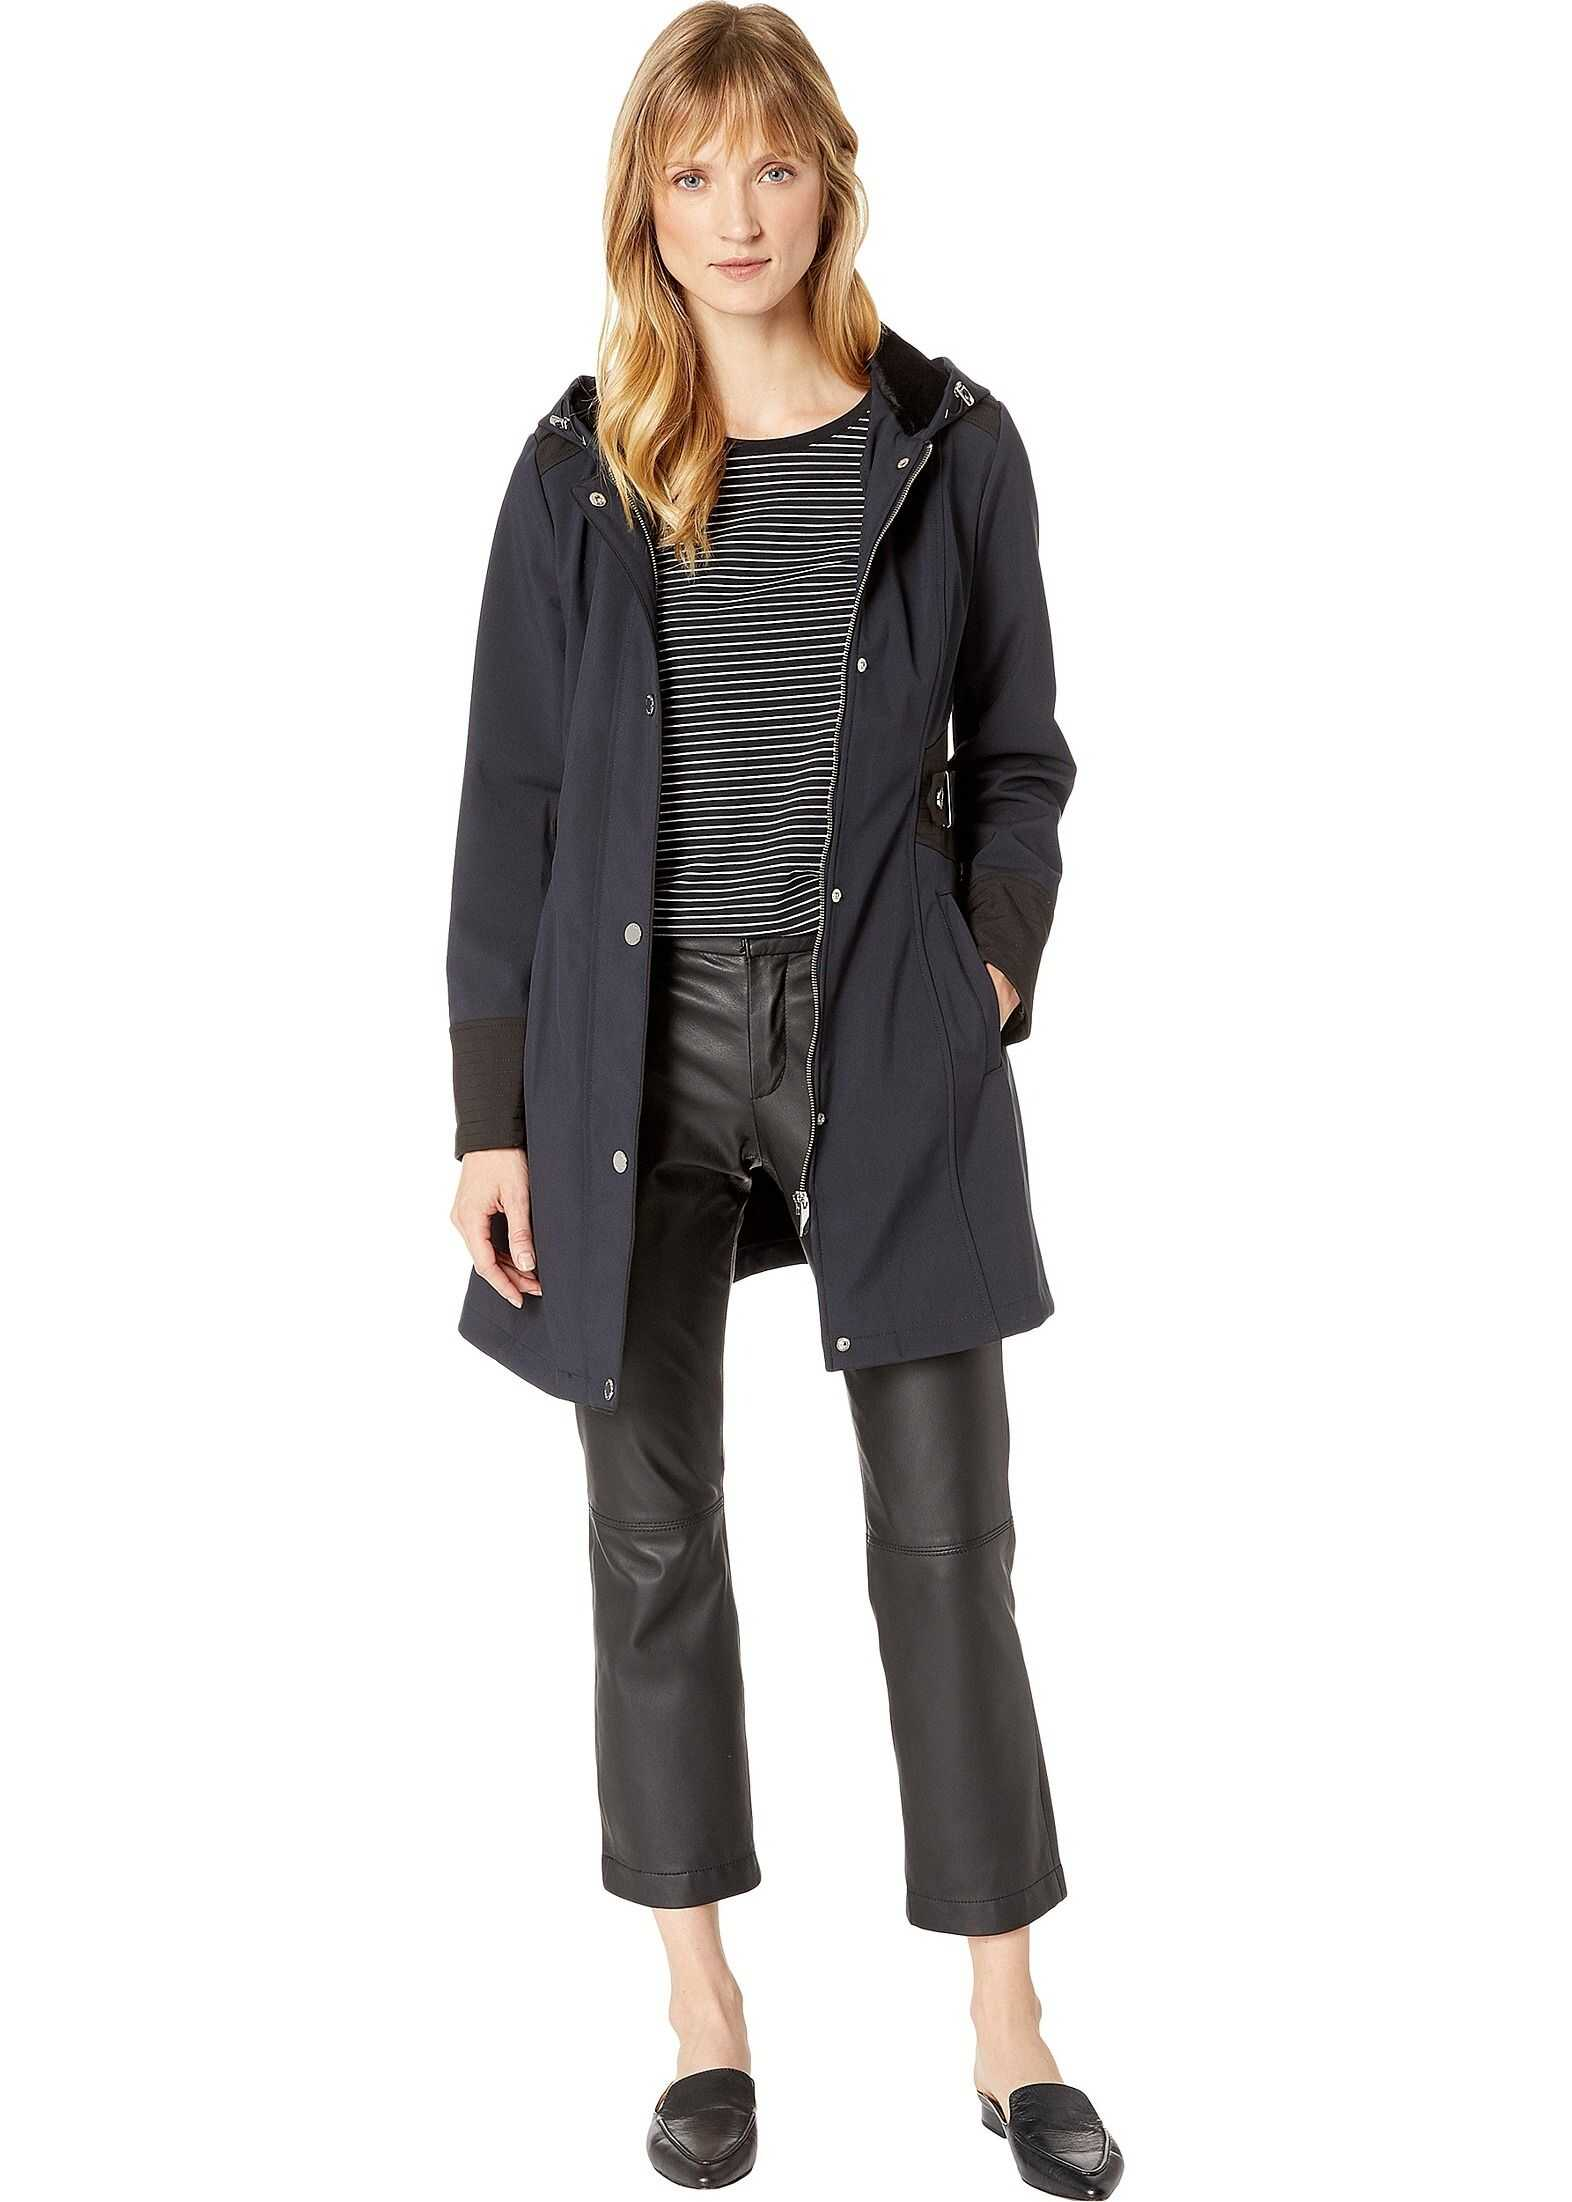 Two-Tone Rouched Sided Water Resistant Softshell with Faux Fur Cozy Backing & Hardware